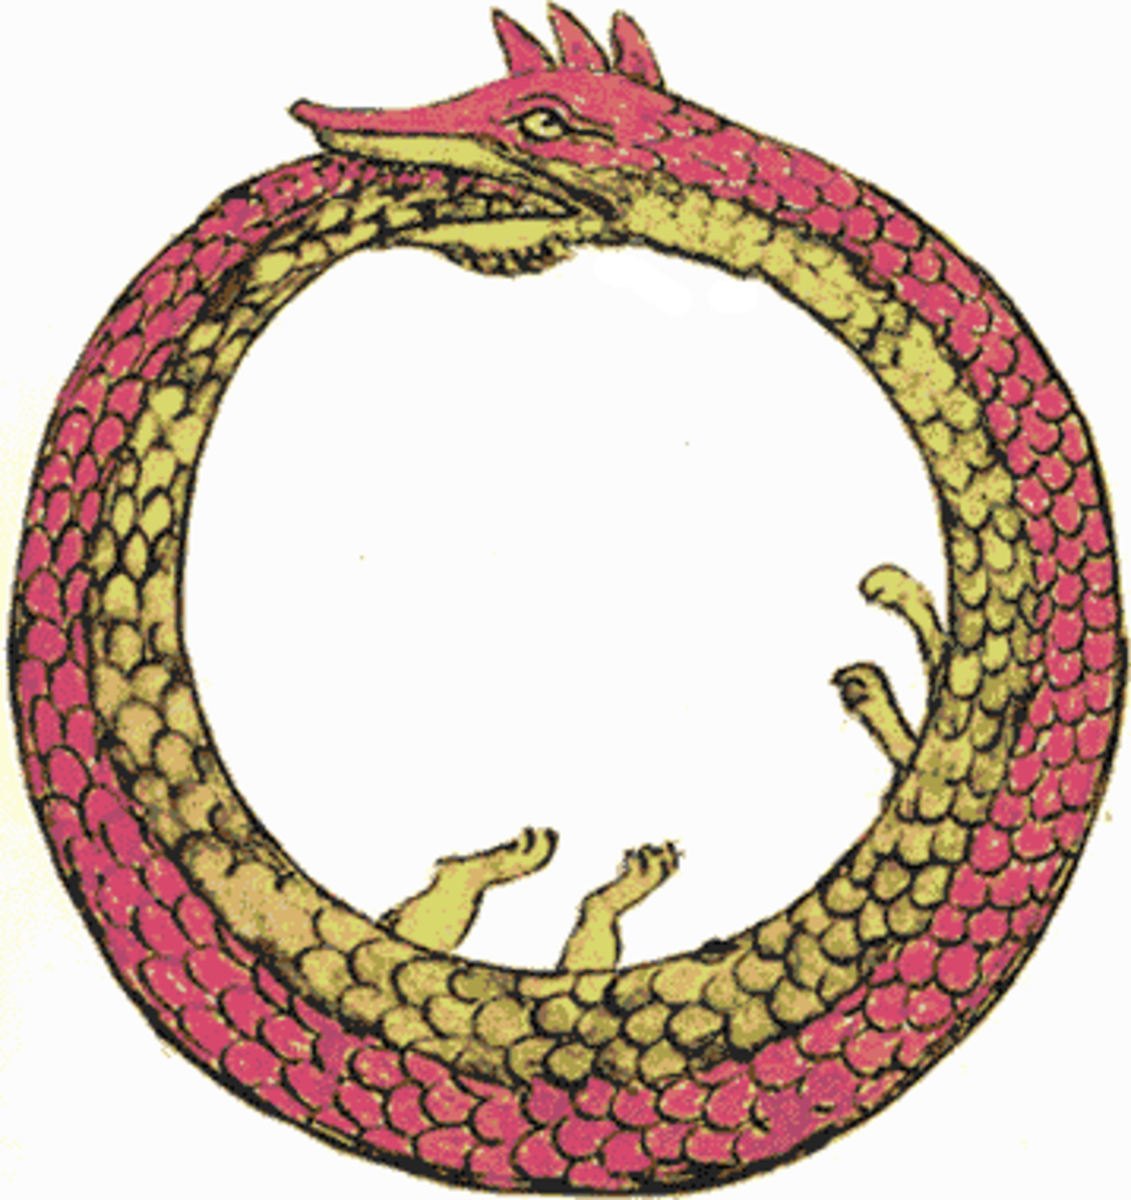 Snake Symbolism and the Serpent Ouroboros